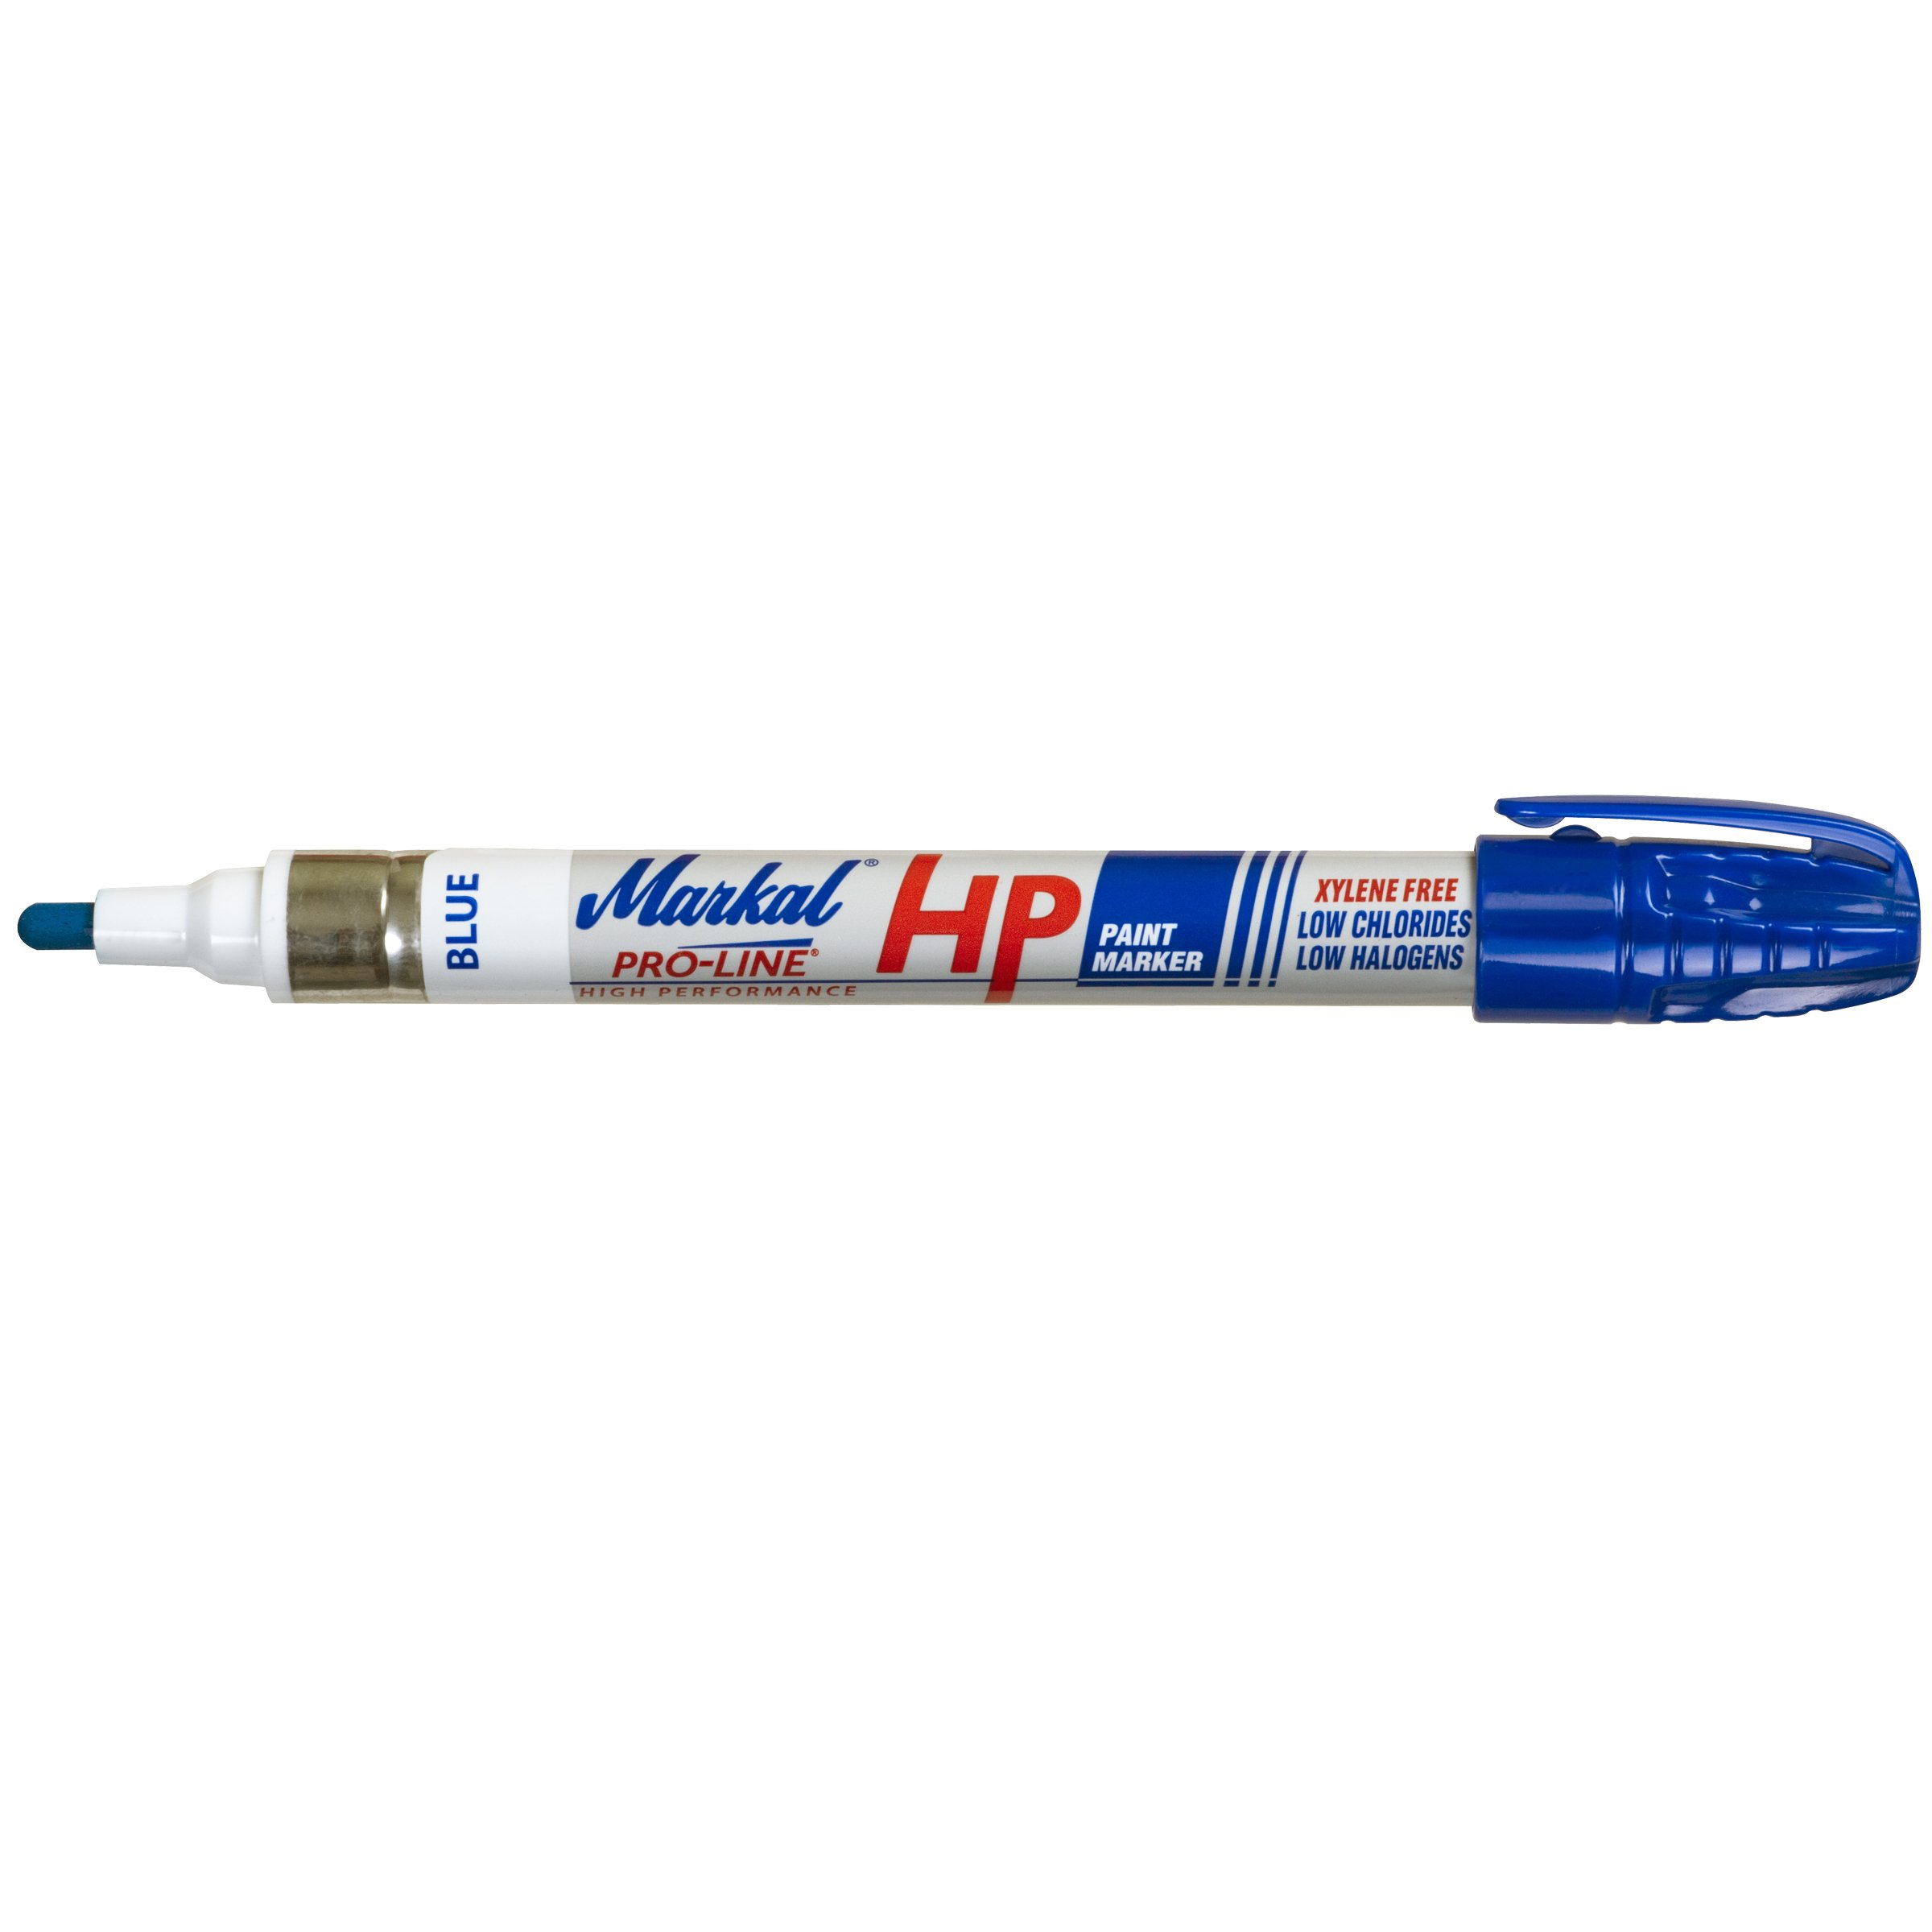 Markal Pro-Line HP High Performance Liquid Paint Marker with 1/8'' Bullet Tip, Blue (Pack of 12) by Markal